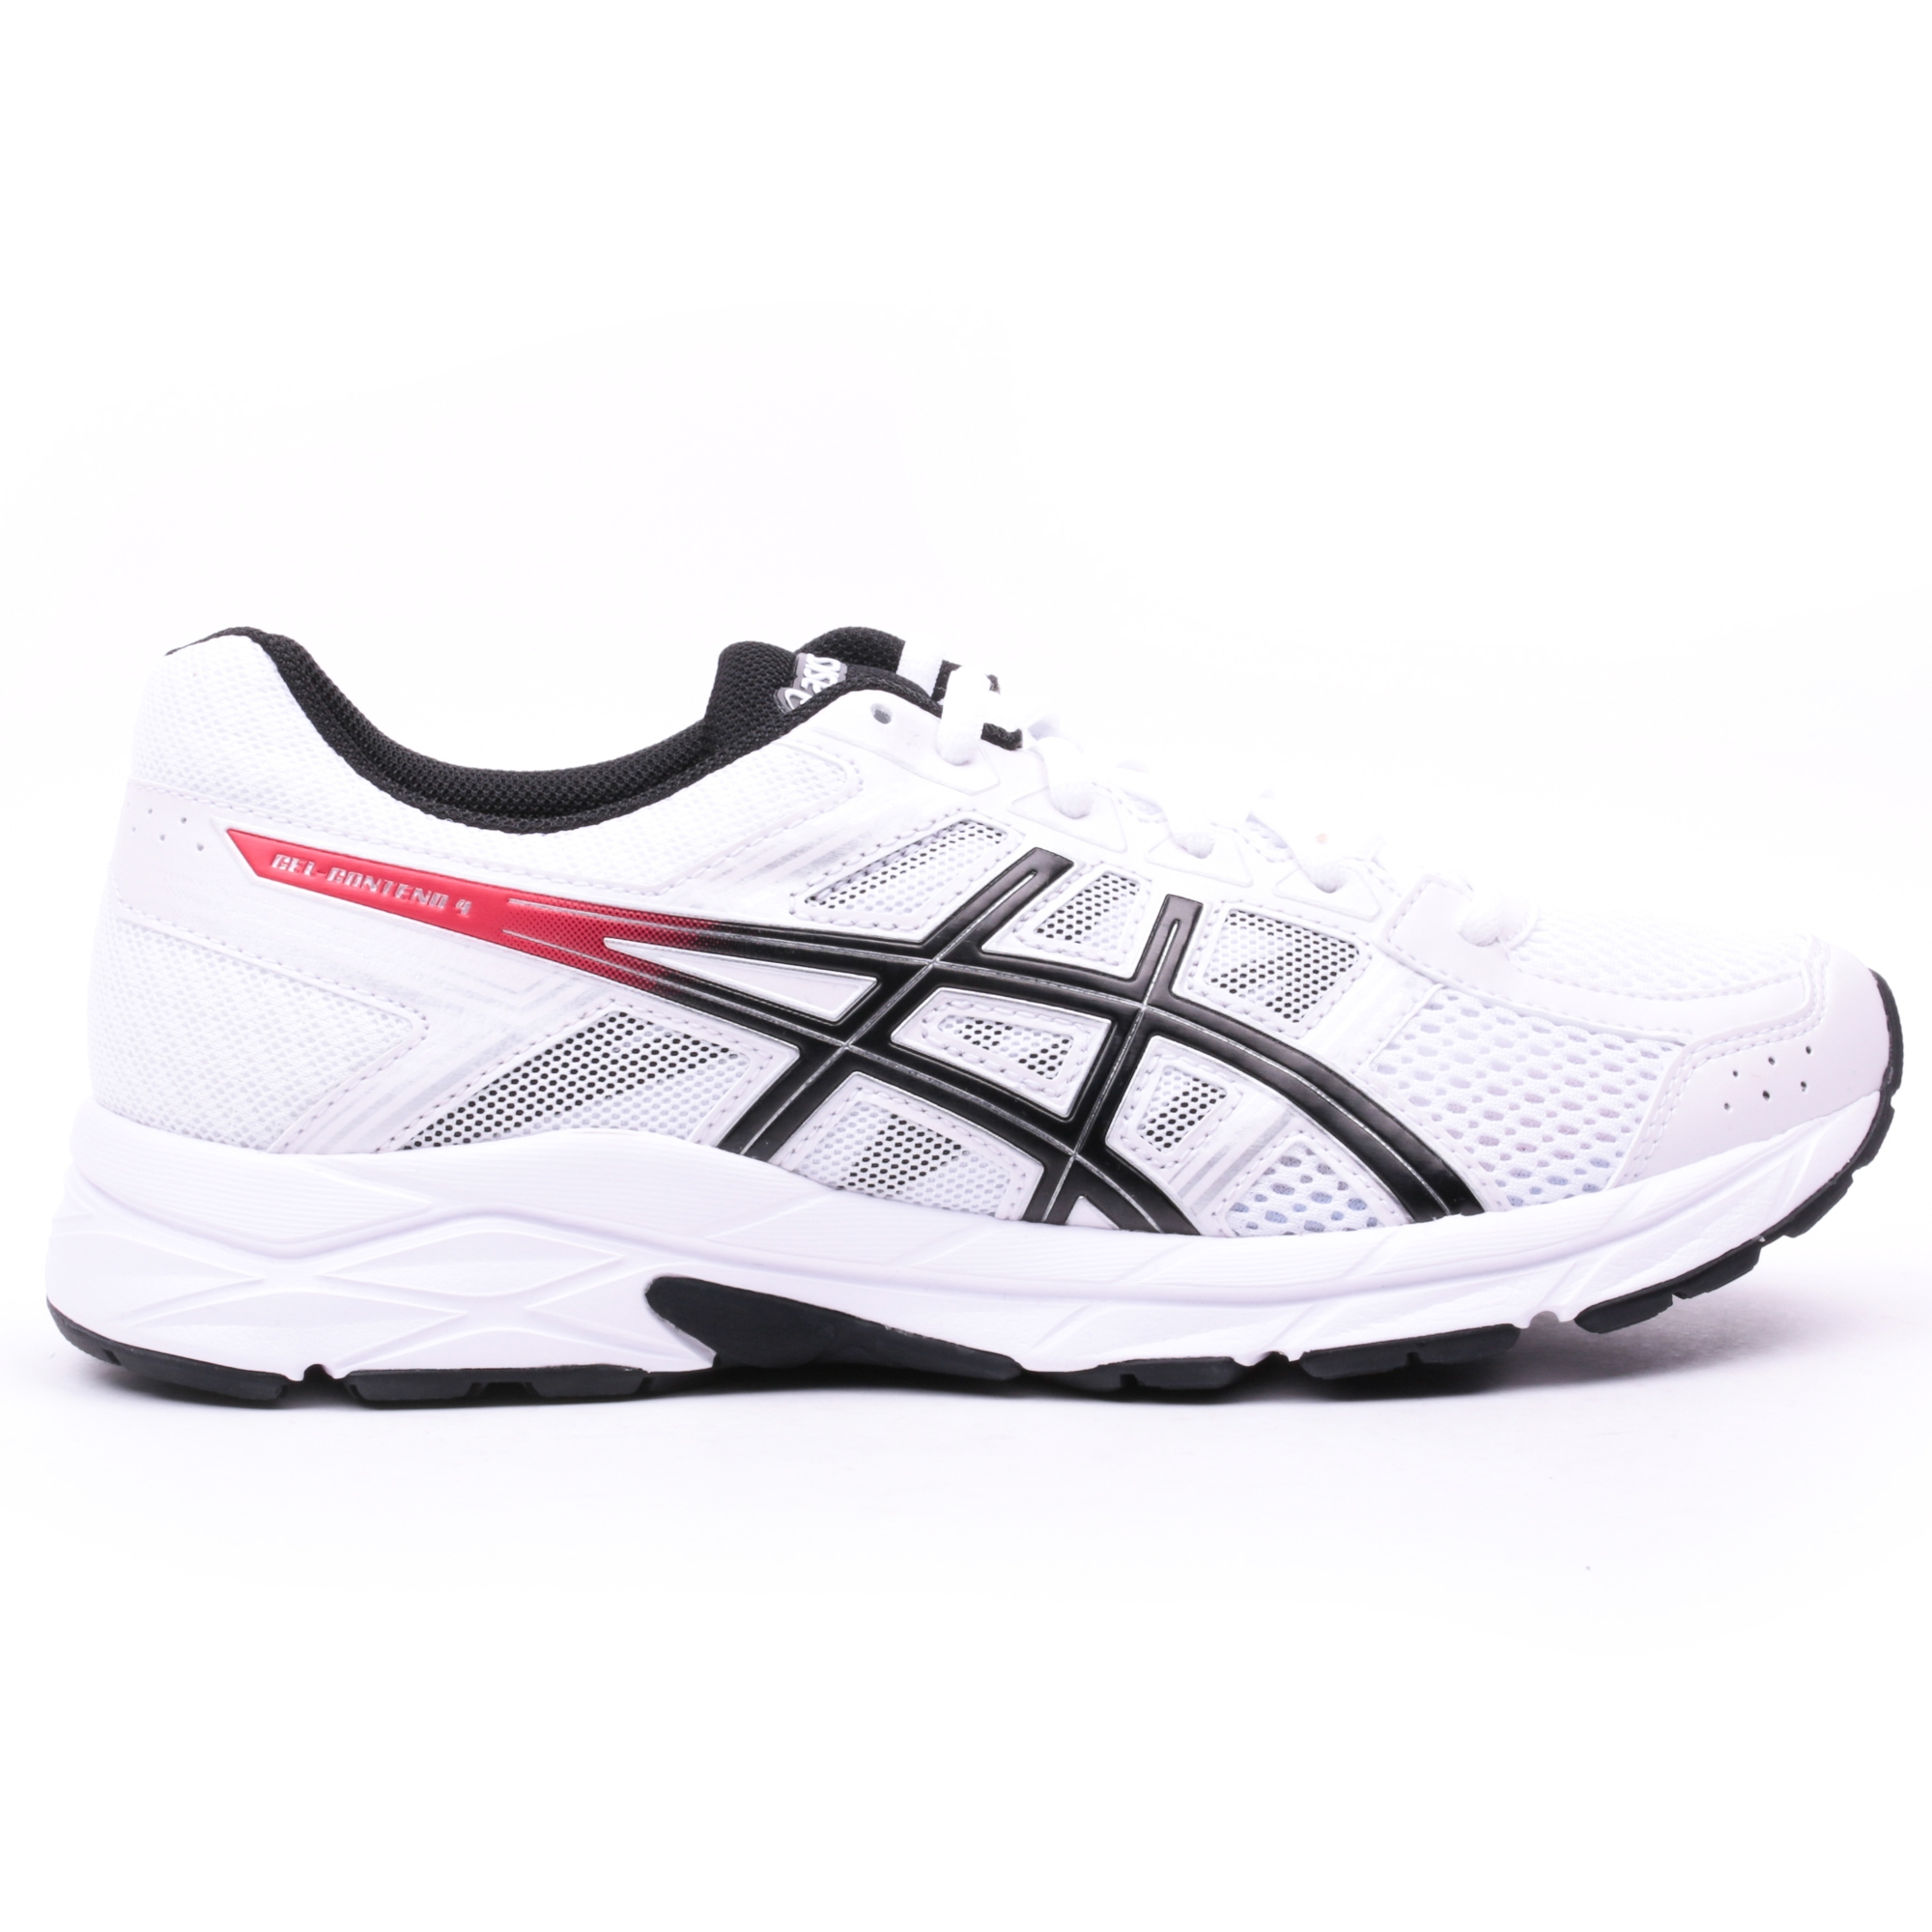 Asics Gel Rouge Asics Contend 4 Blanc Classique Rouge Slash Store Store a84d180 - mwb.website